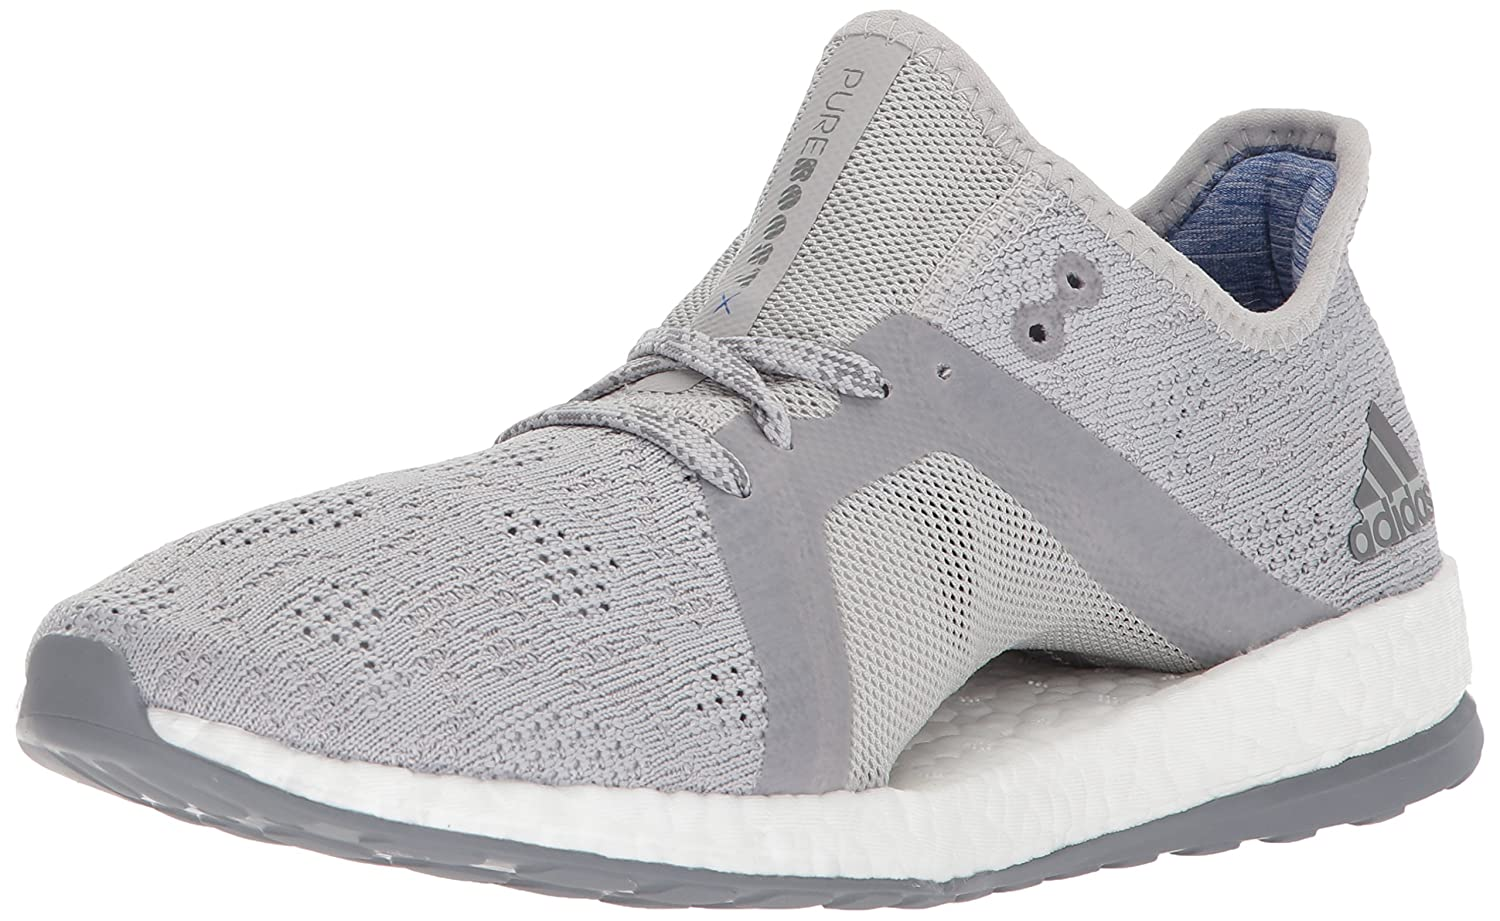 077b505b79e9 adidas Women's Pureboost X Element Running Shoe B0716X6J7D 8 B(M) US|Grey